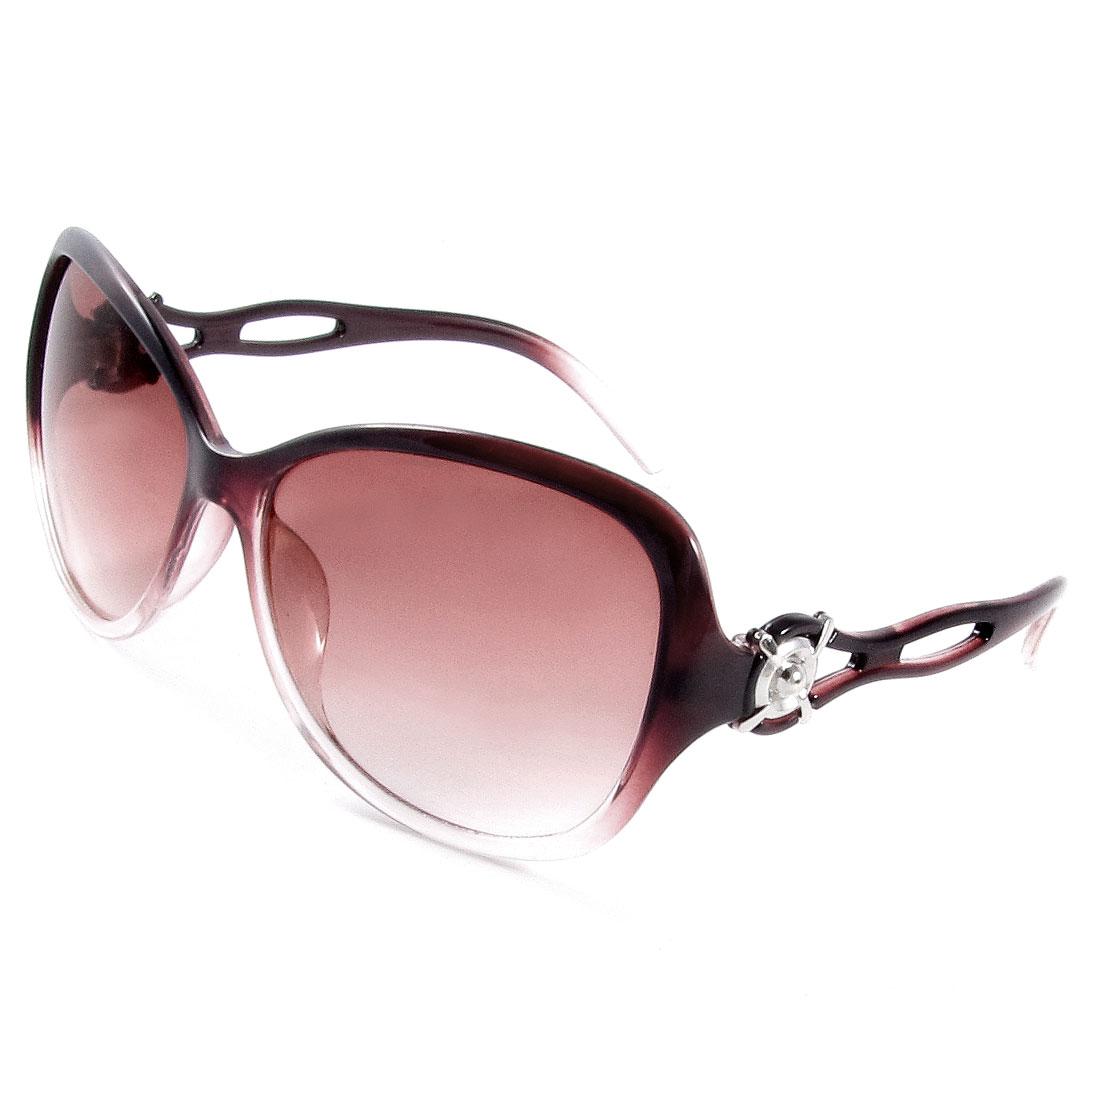 Outside Traveling Round Shaped Colored Lenses Plastic Arms Sunglasses for Lady